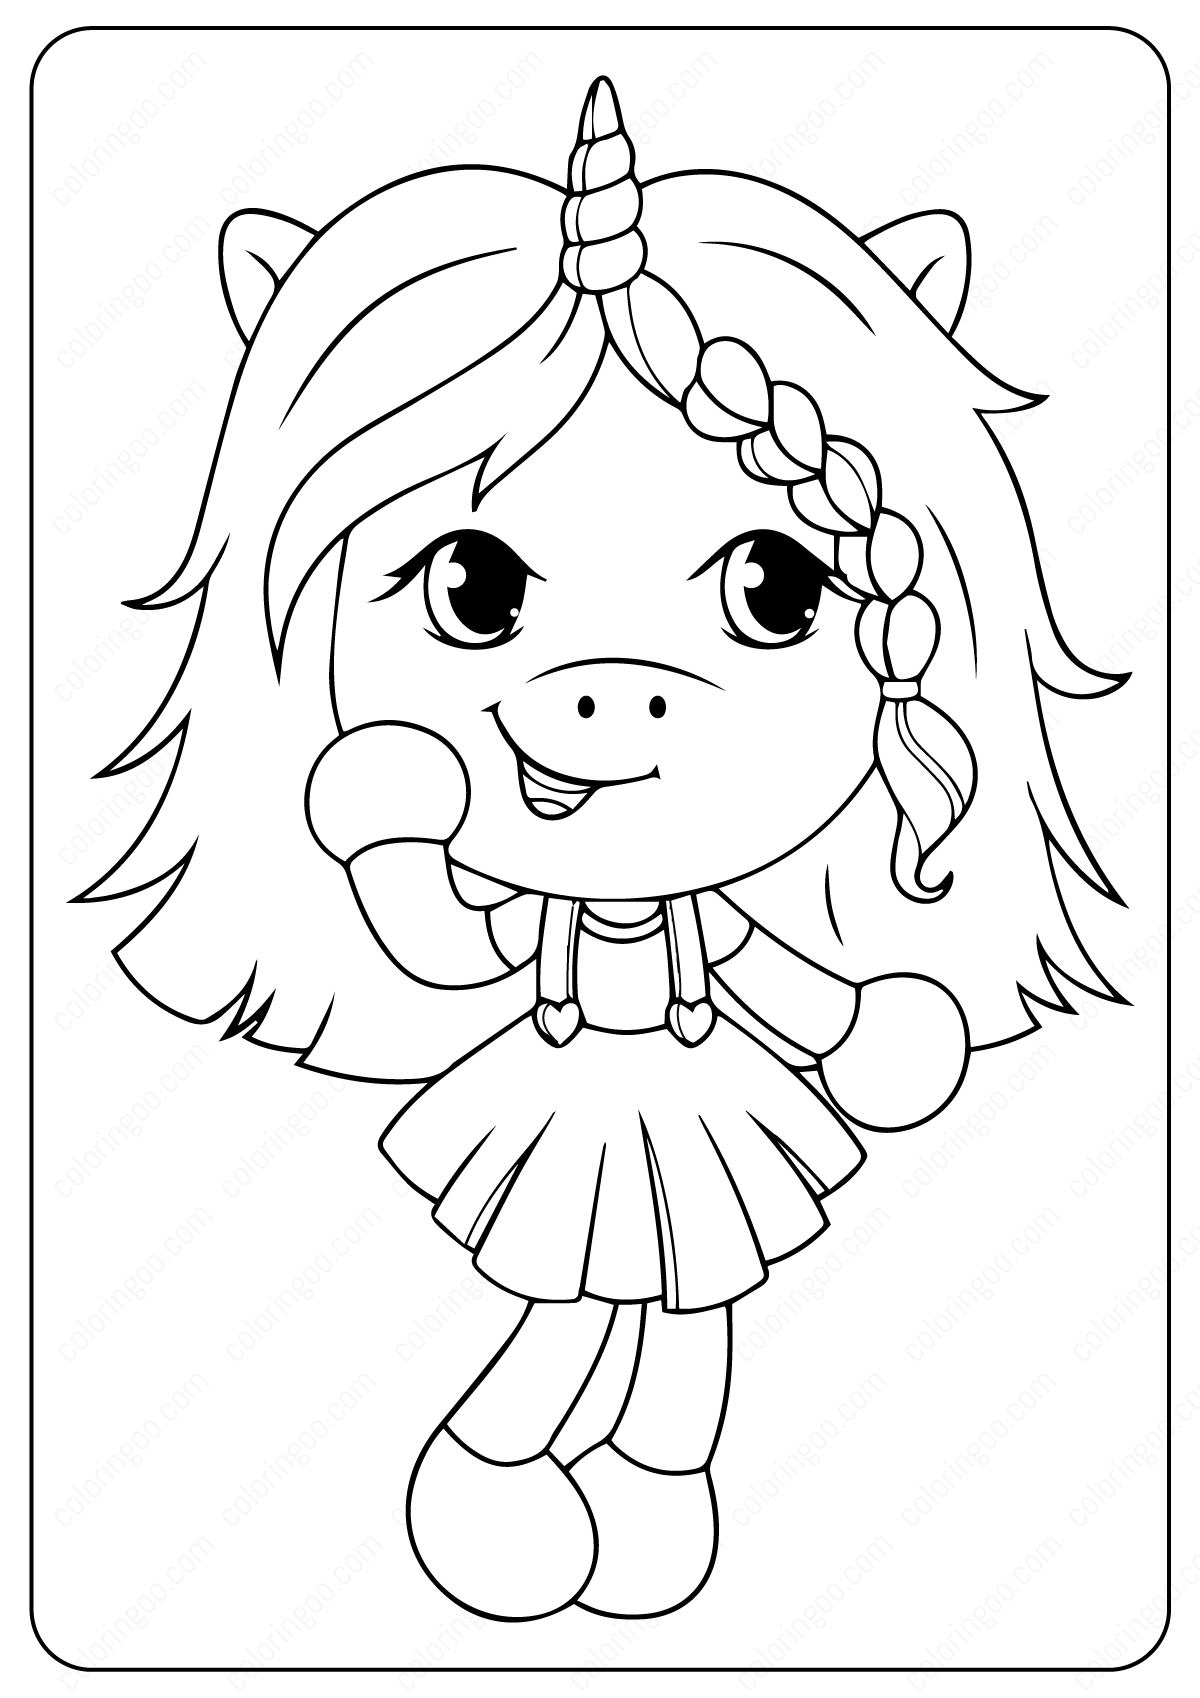 Unicorn Girl Coloring Page Unicorn coloring pages